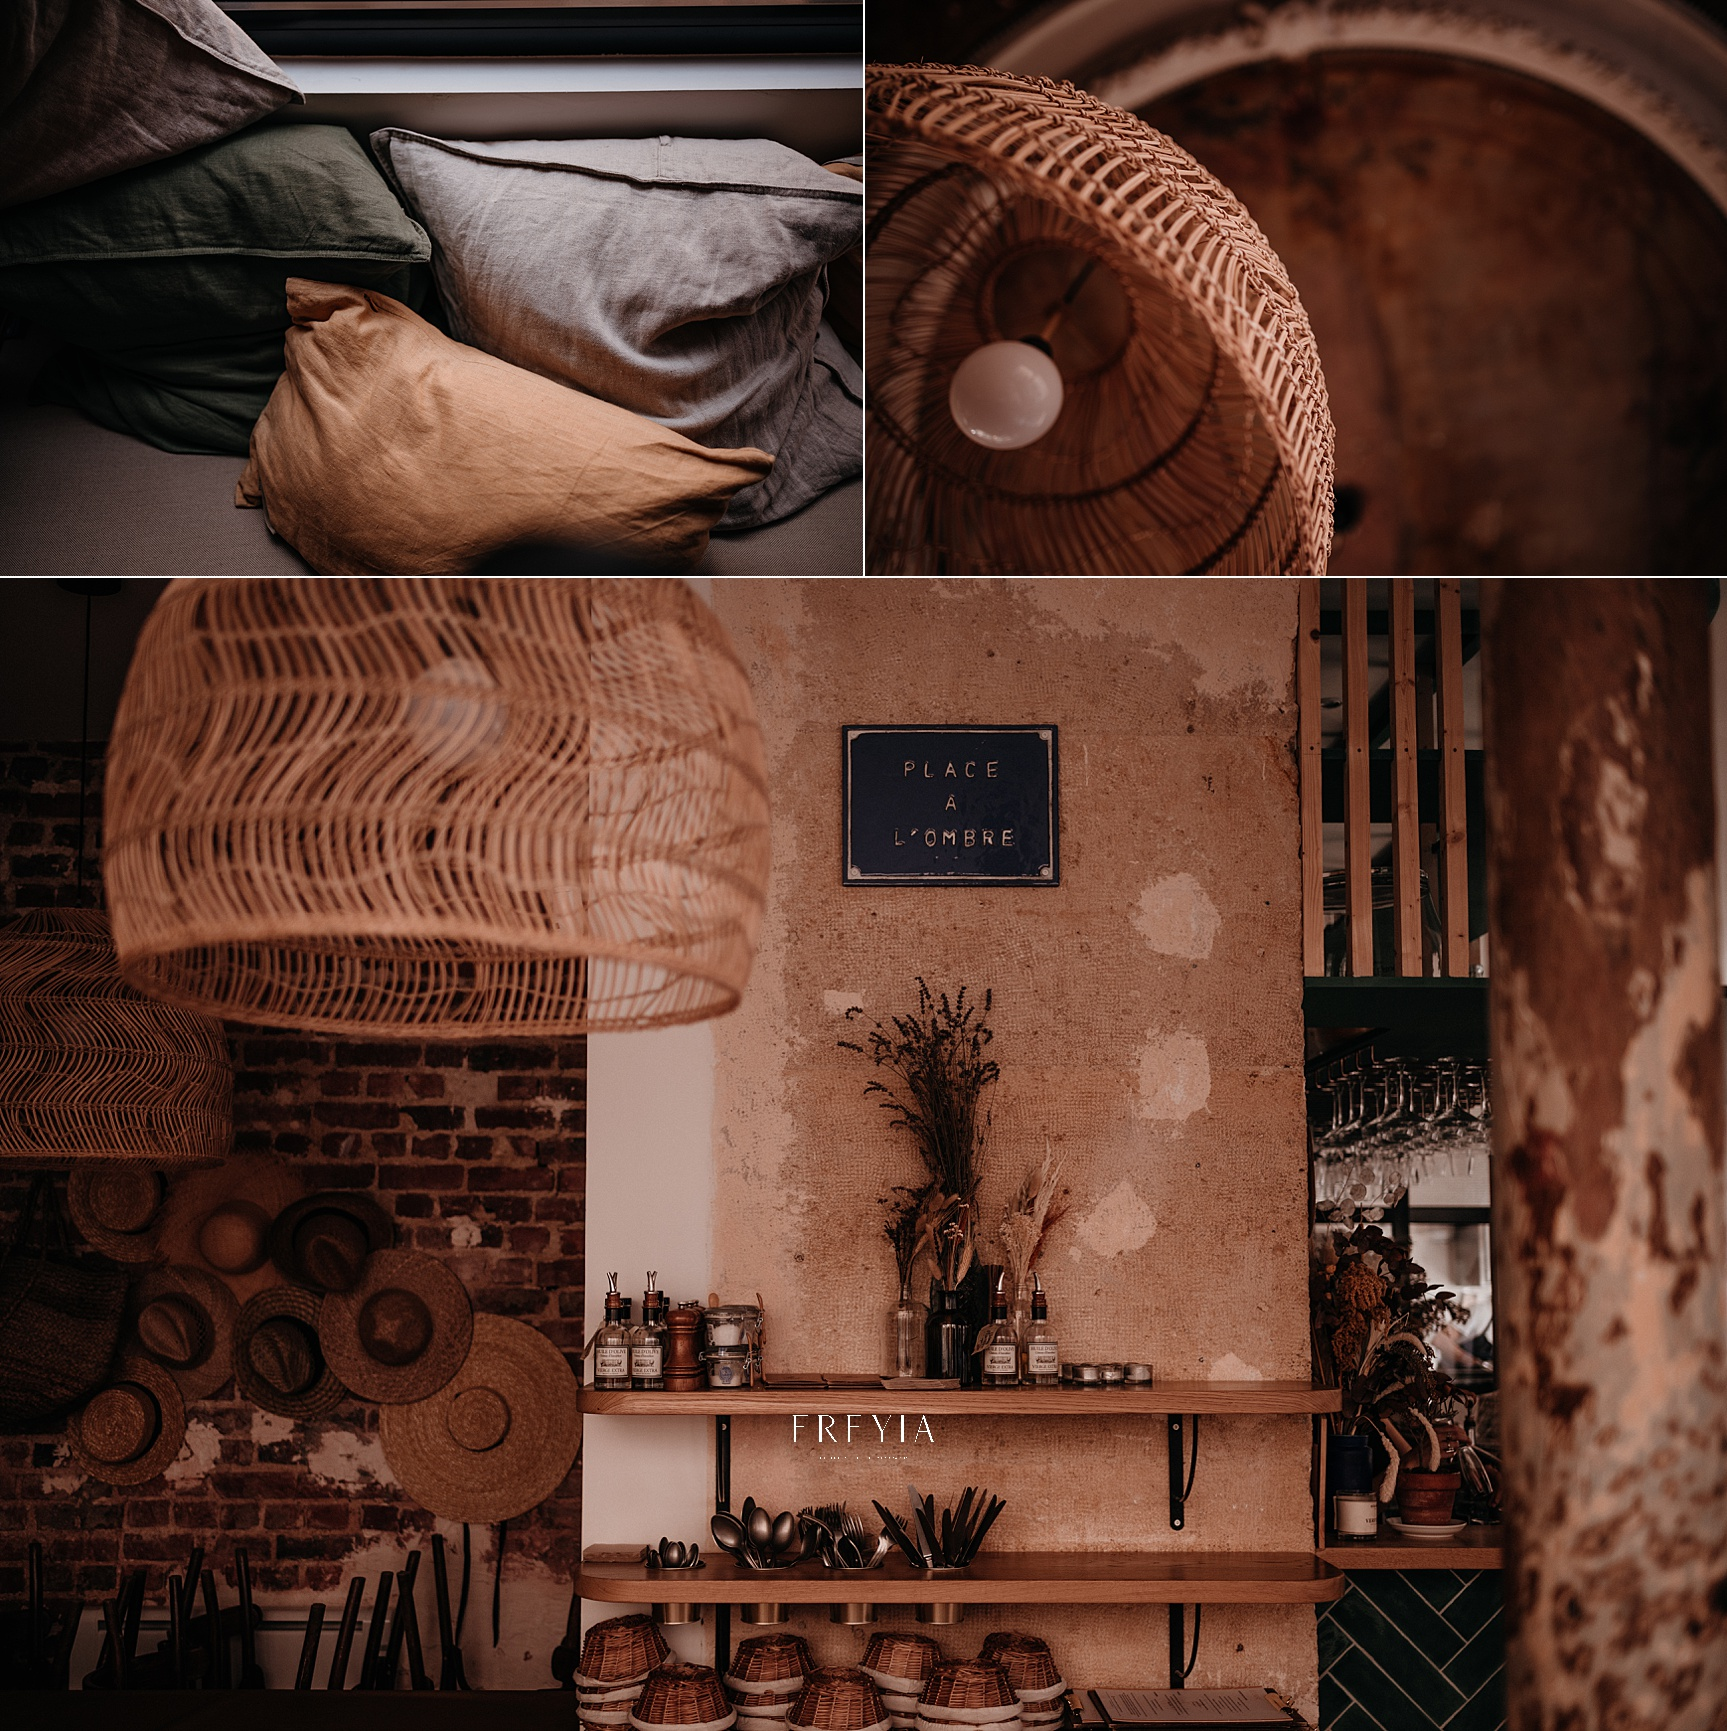 P + F |  mariage reportage alternatif moody intime vintage naturel boho boheme |  PHOTOGRAPHE mariage PARIS france destination  | FREYIA photography_-205.jpg